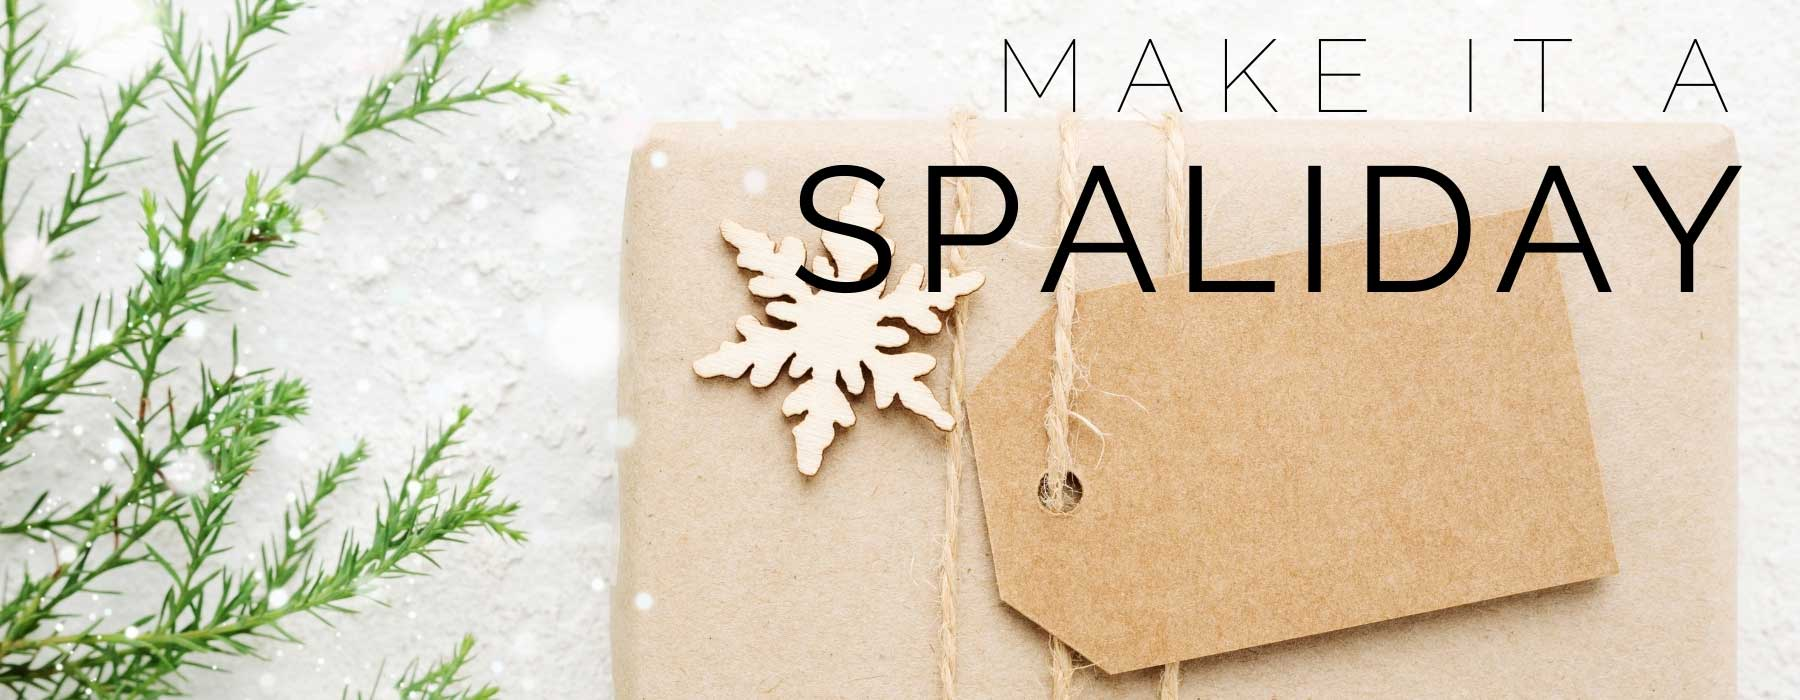 Make it a Spaliday